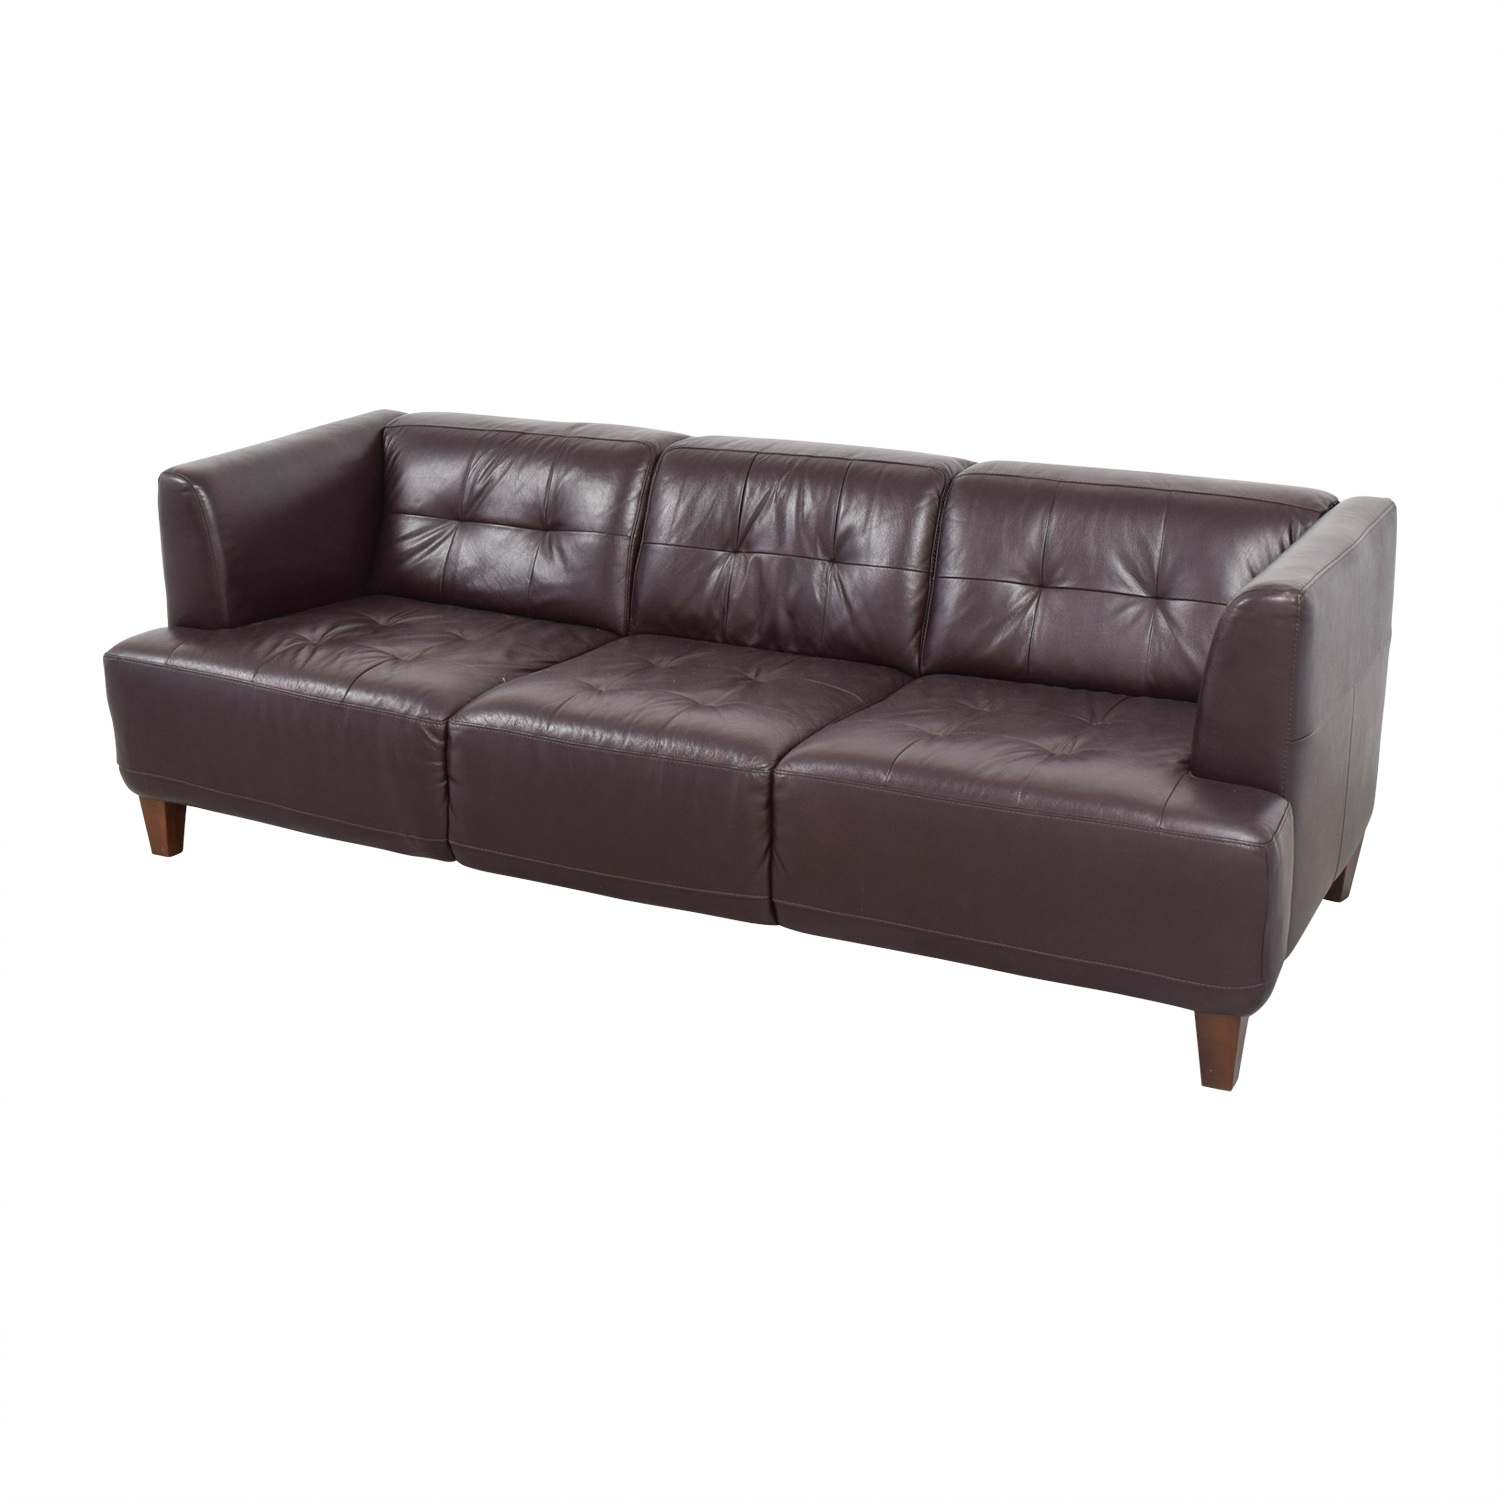 tufted brown leather sofa bianca dimensions 85 off macy 39s couch sofas